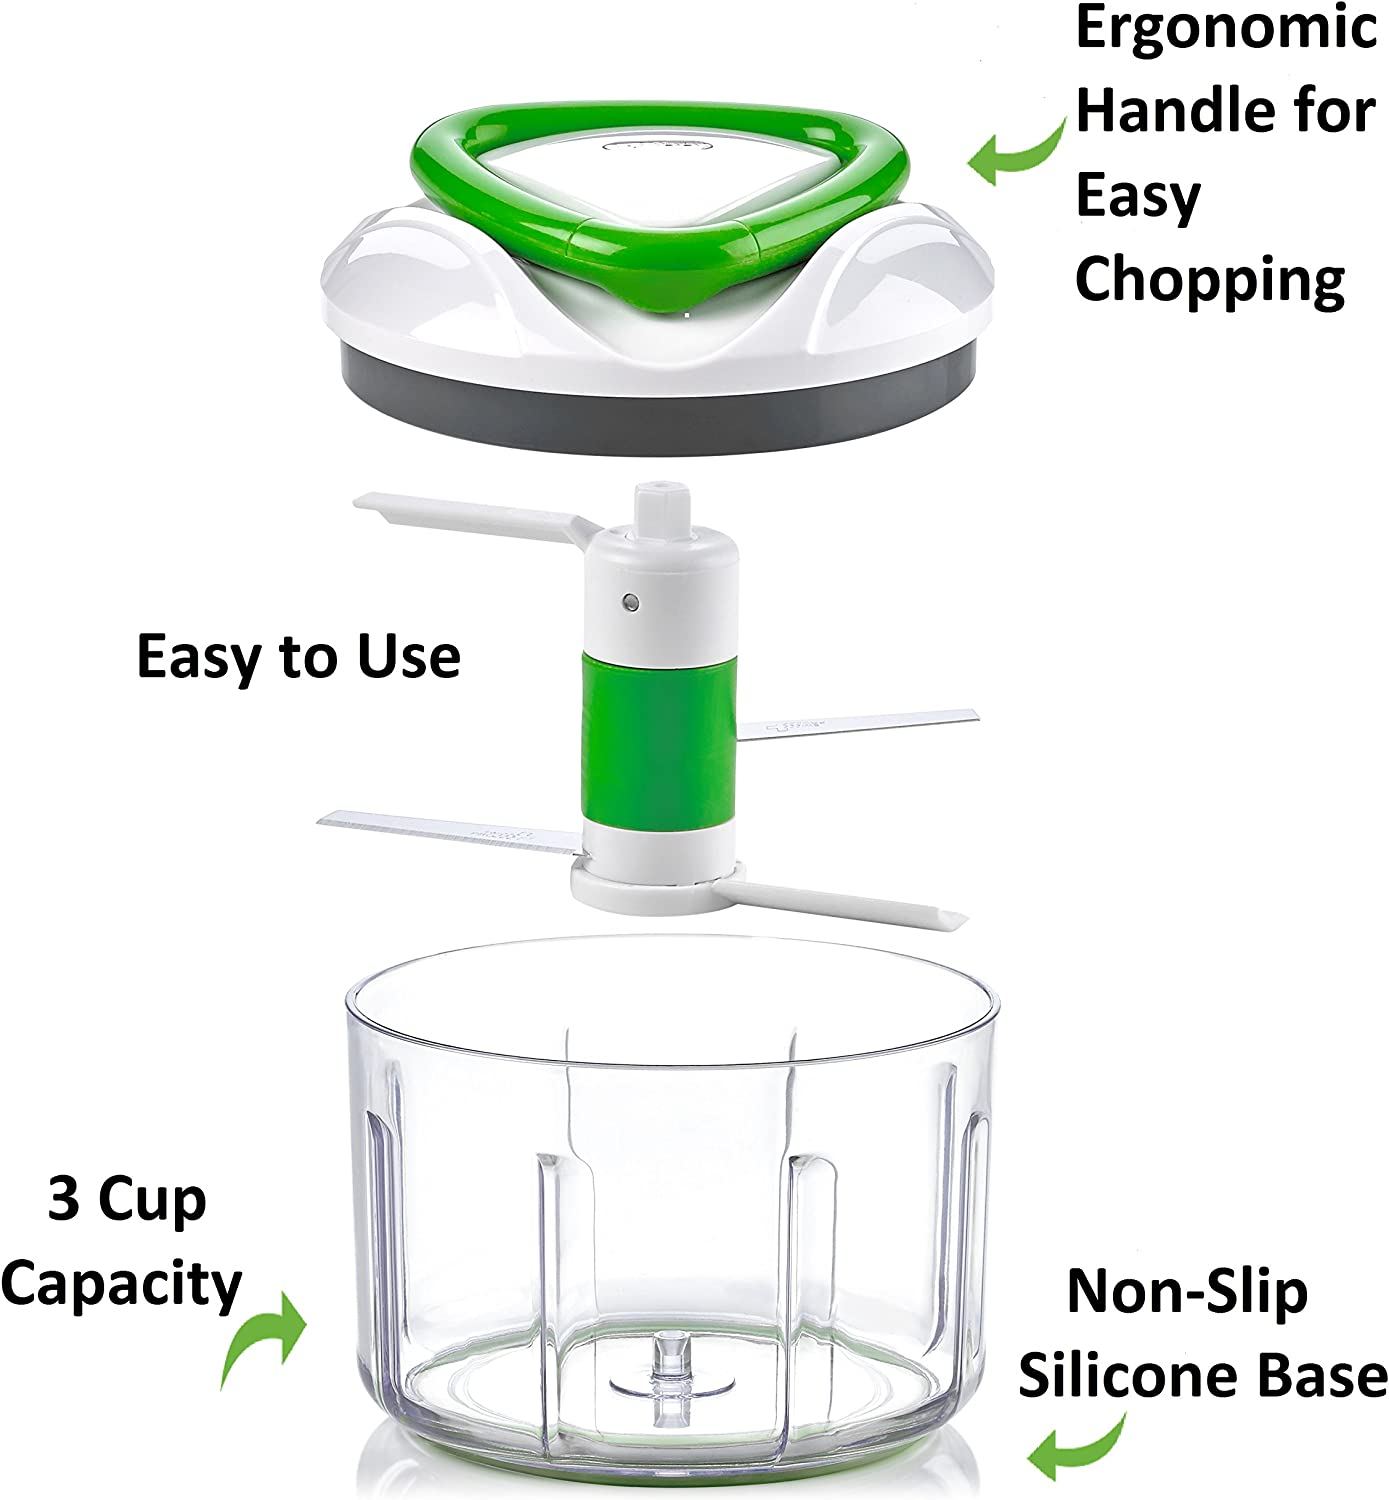 ZYLISS Easy Pull Food Chopper and Manual Food Processor – Vegetable Slicer and Dicer – Hand Held Green.